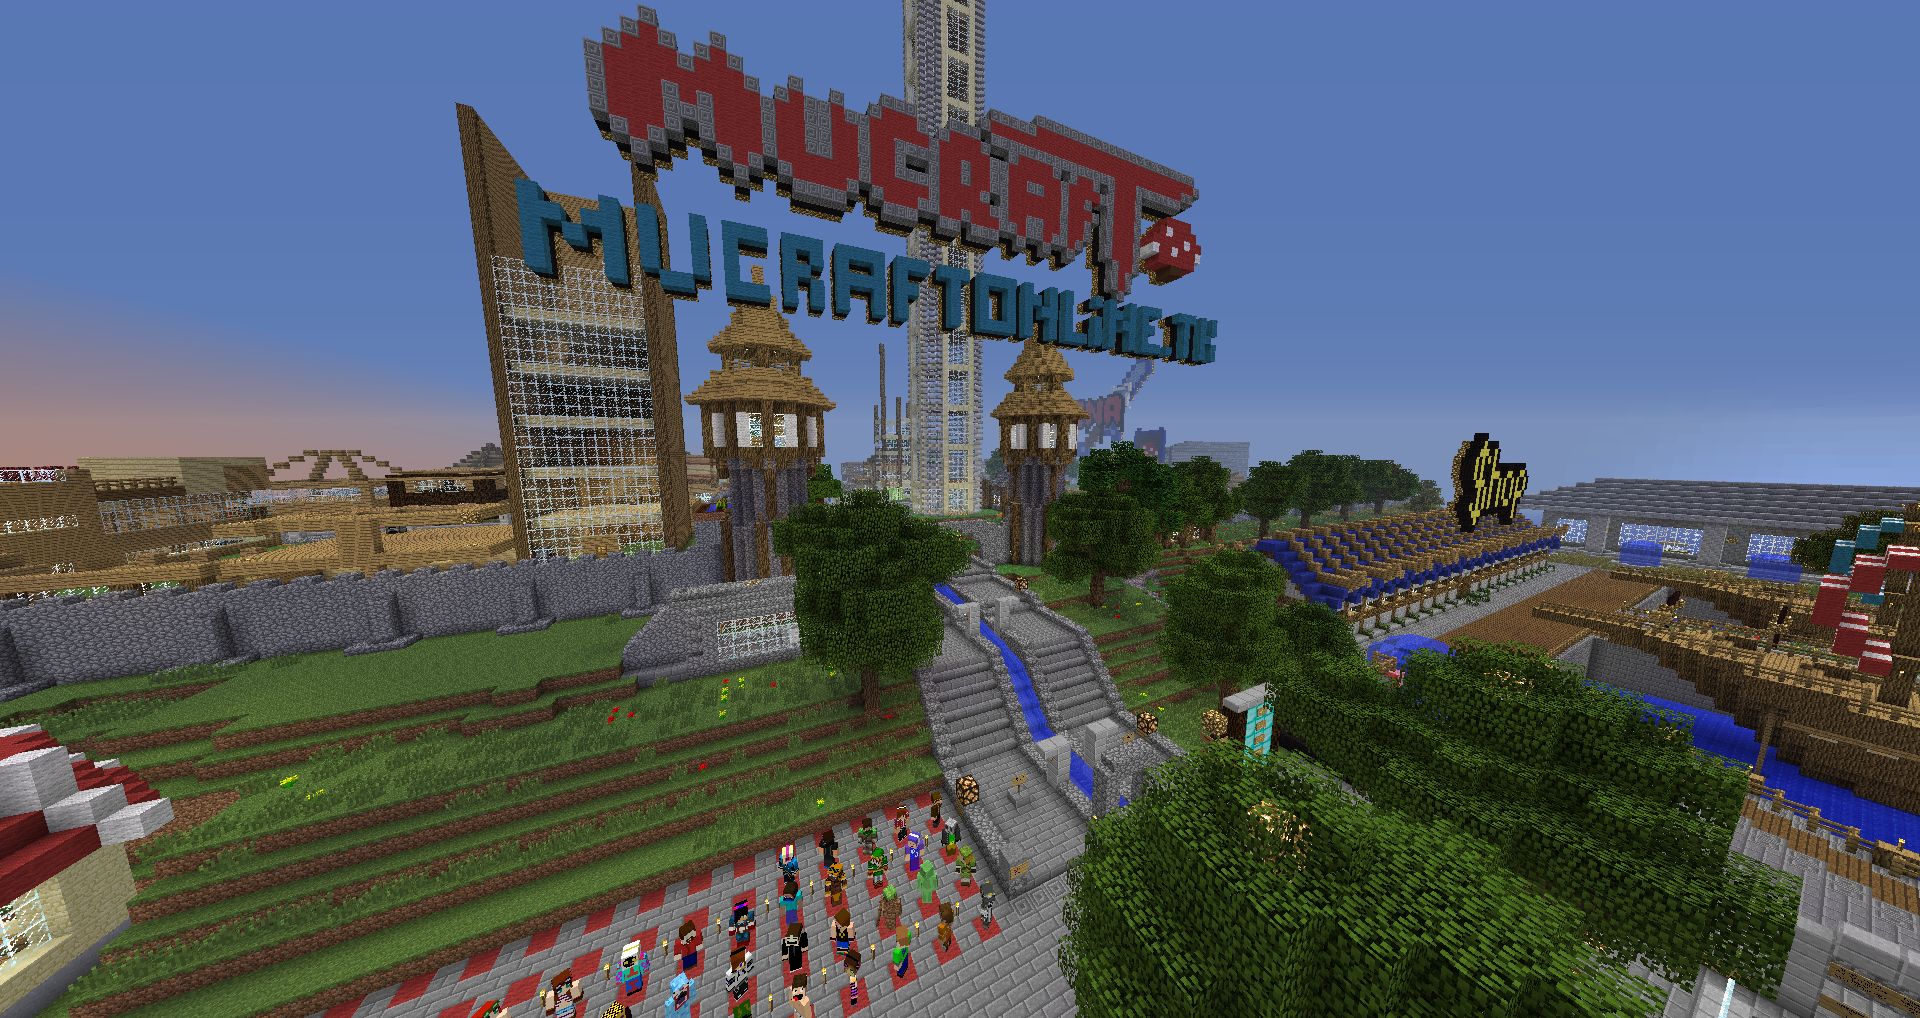 A picture from the minecraft server MuCraft 2012